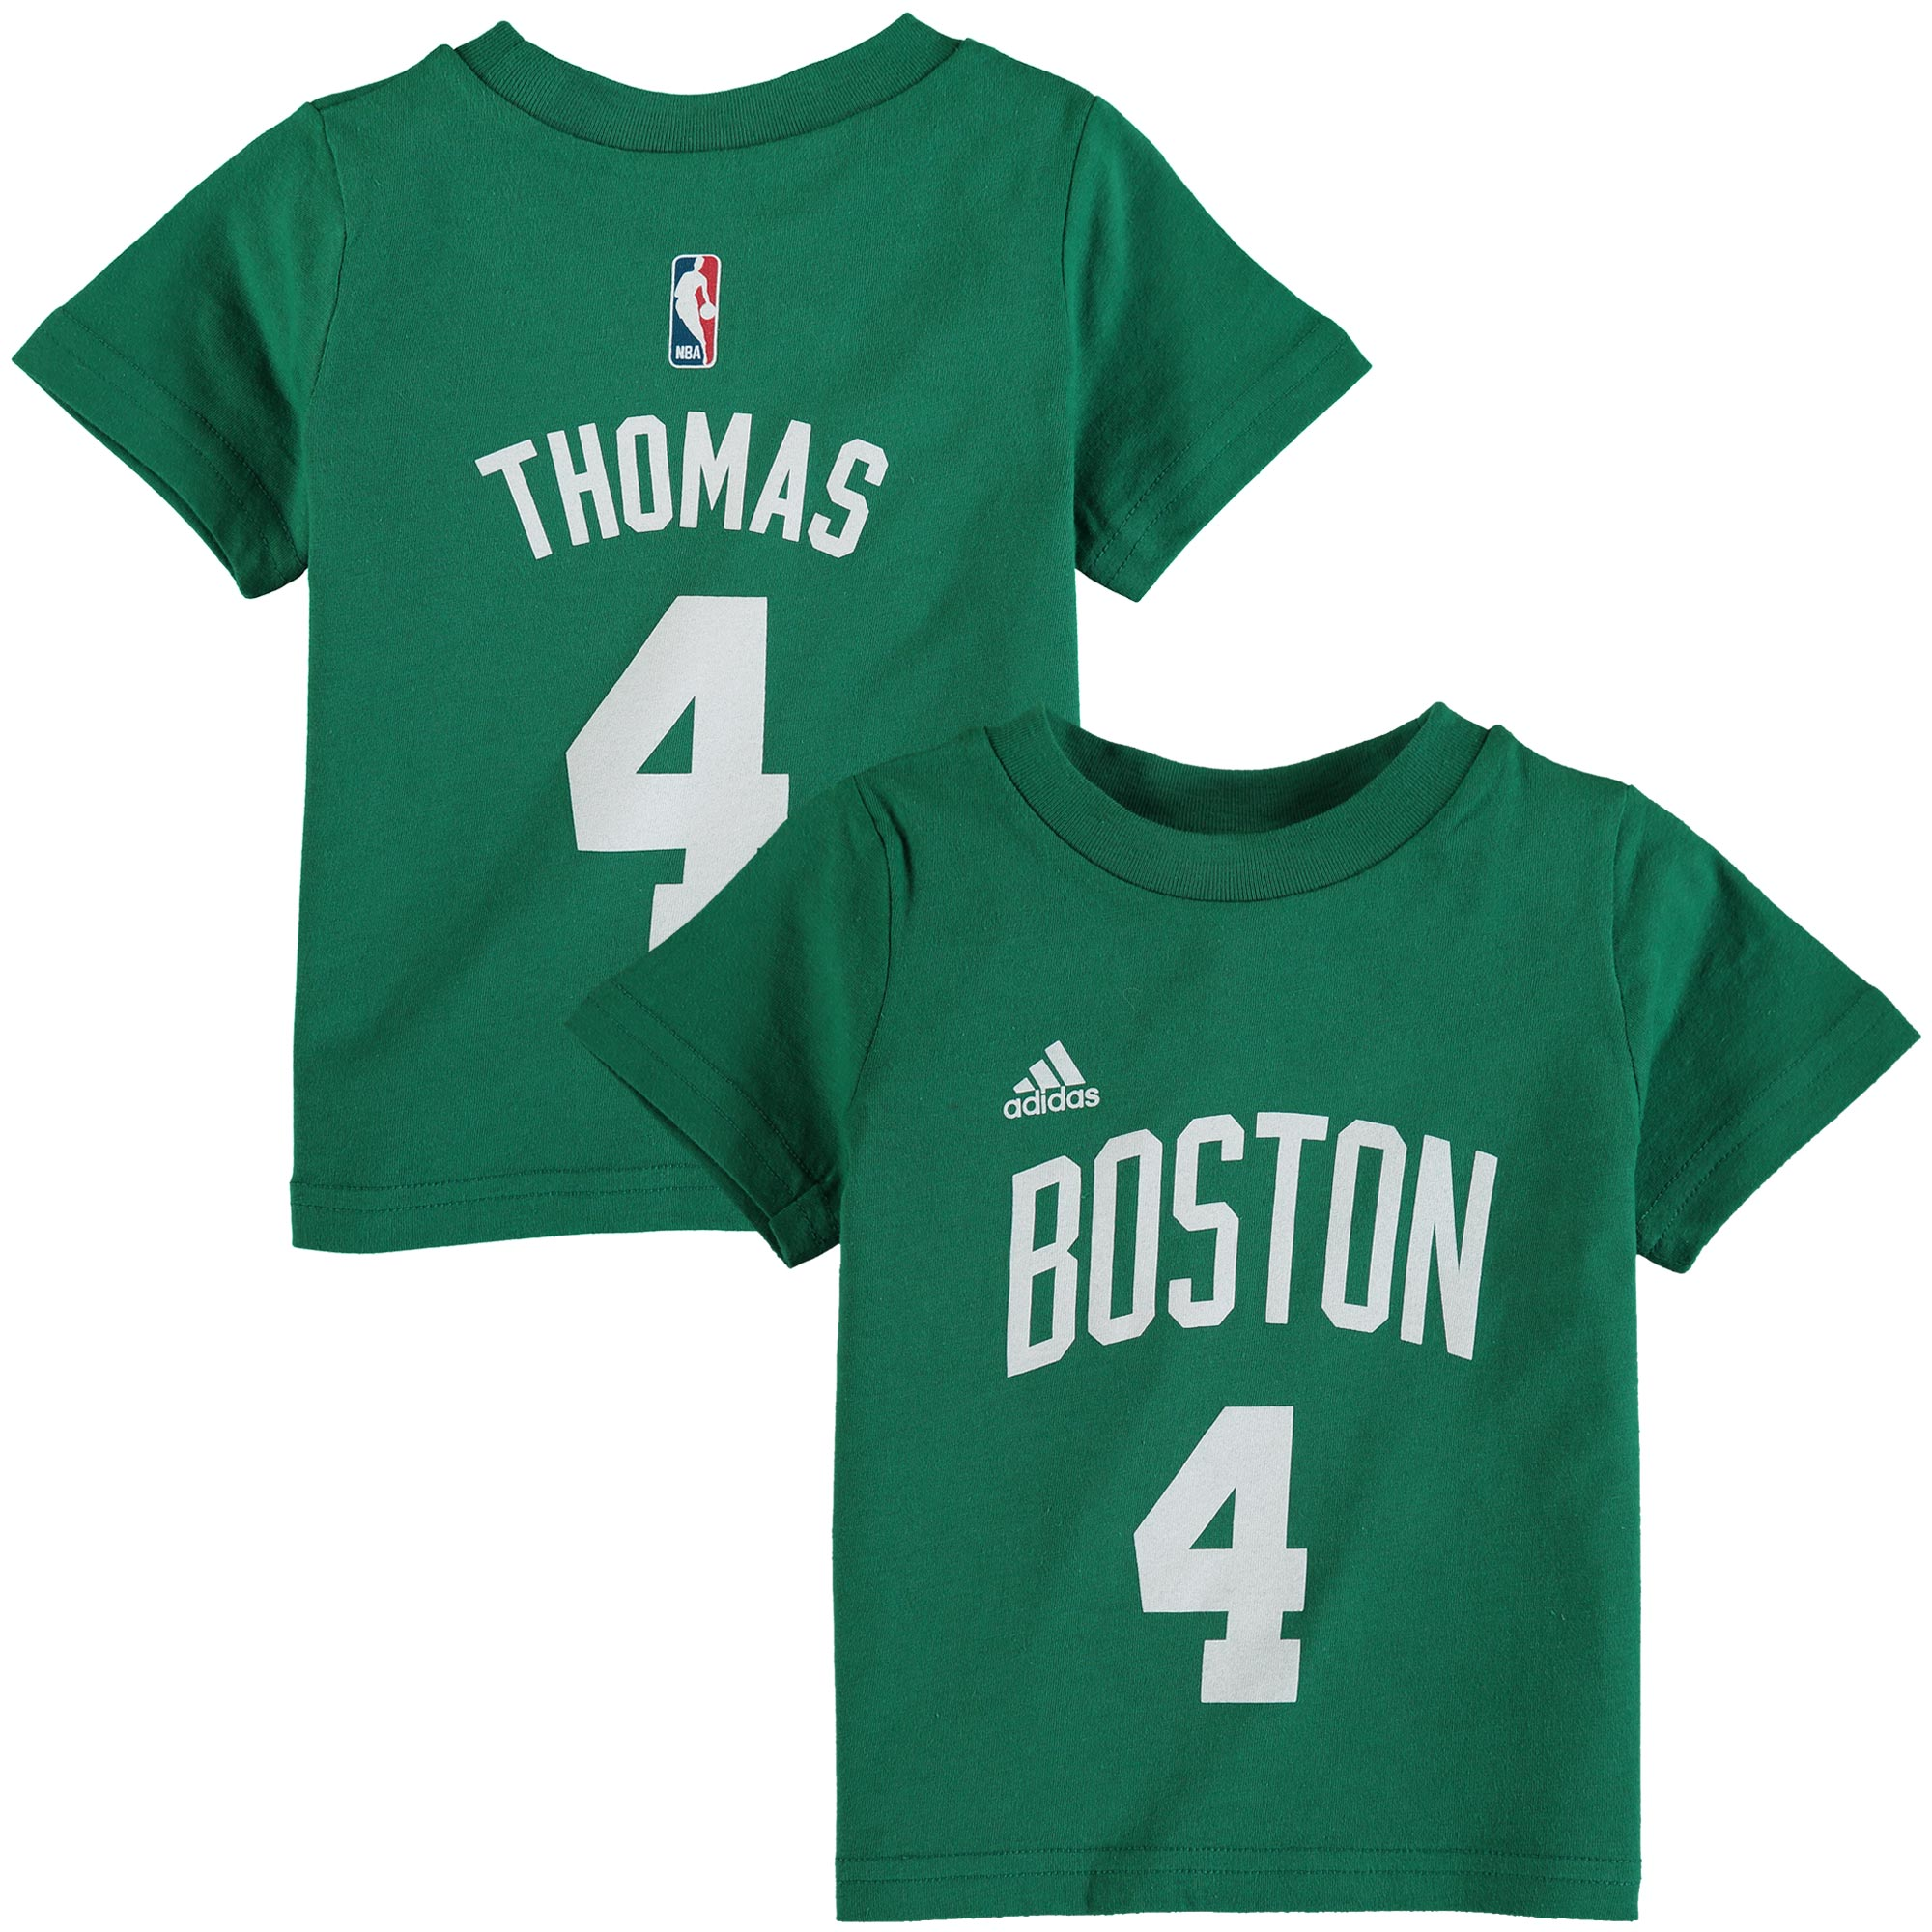 Boston Celtics adidas Toddler Name and Number T-Shirt - Green